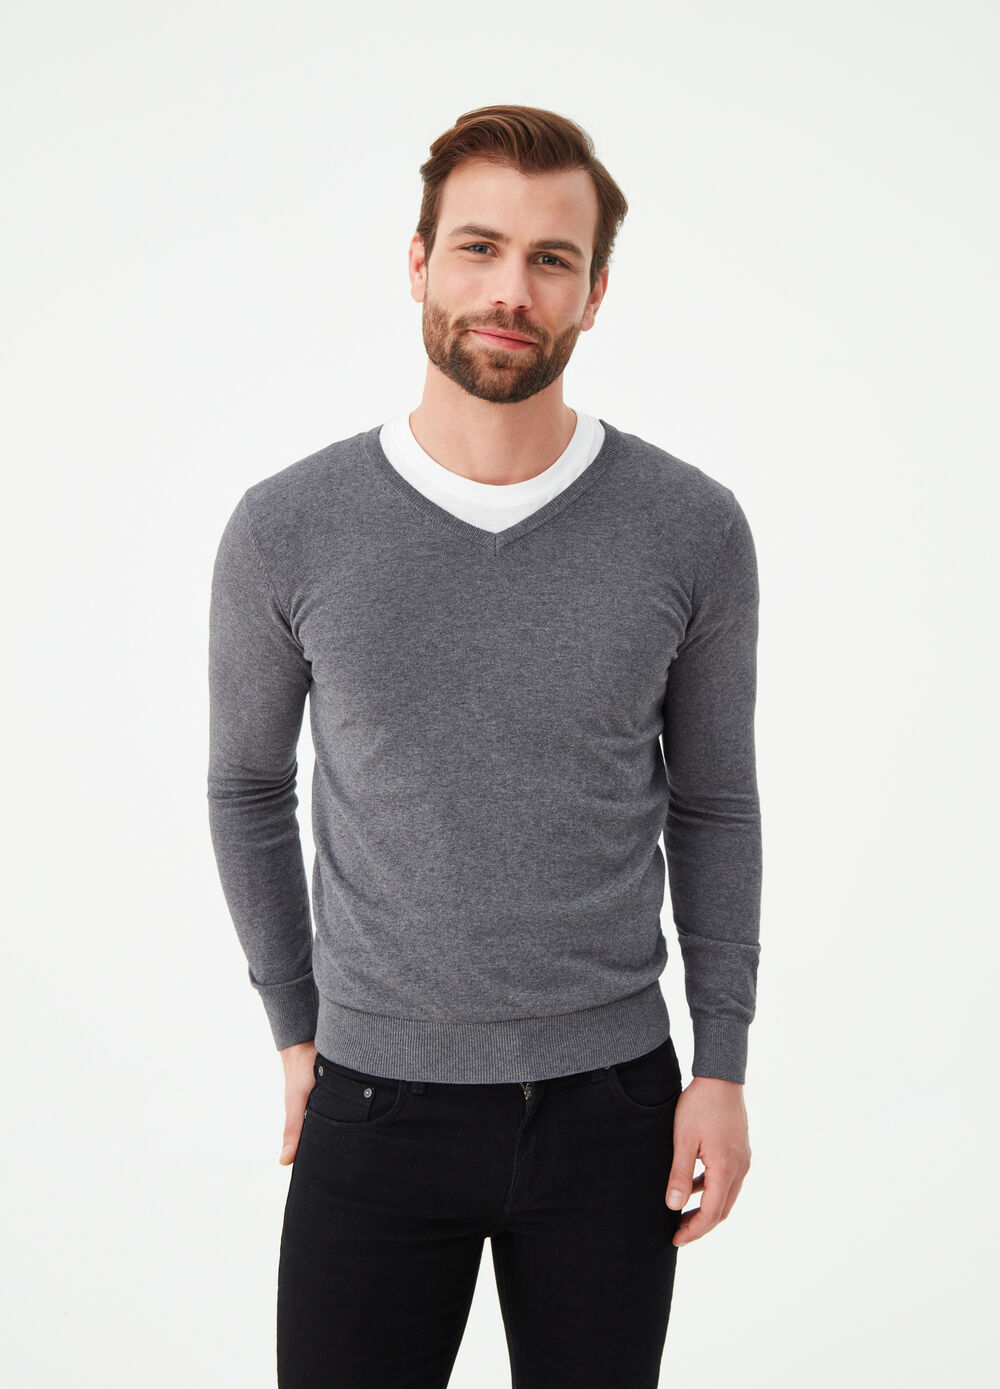 V-neck pullover with knit design